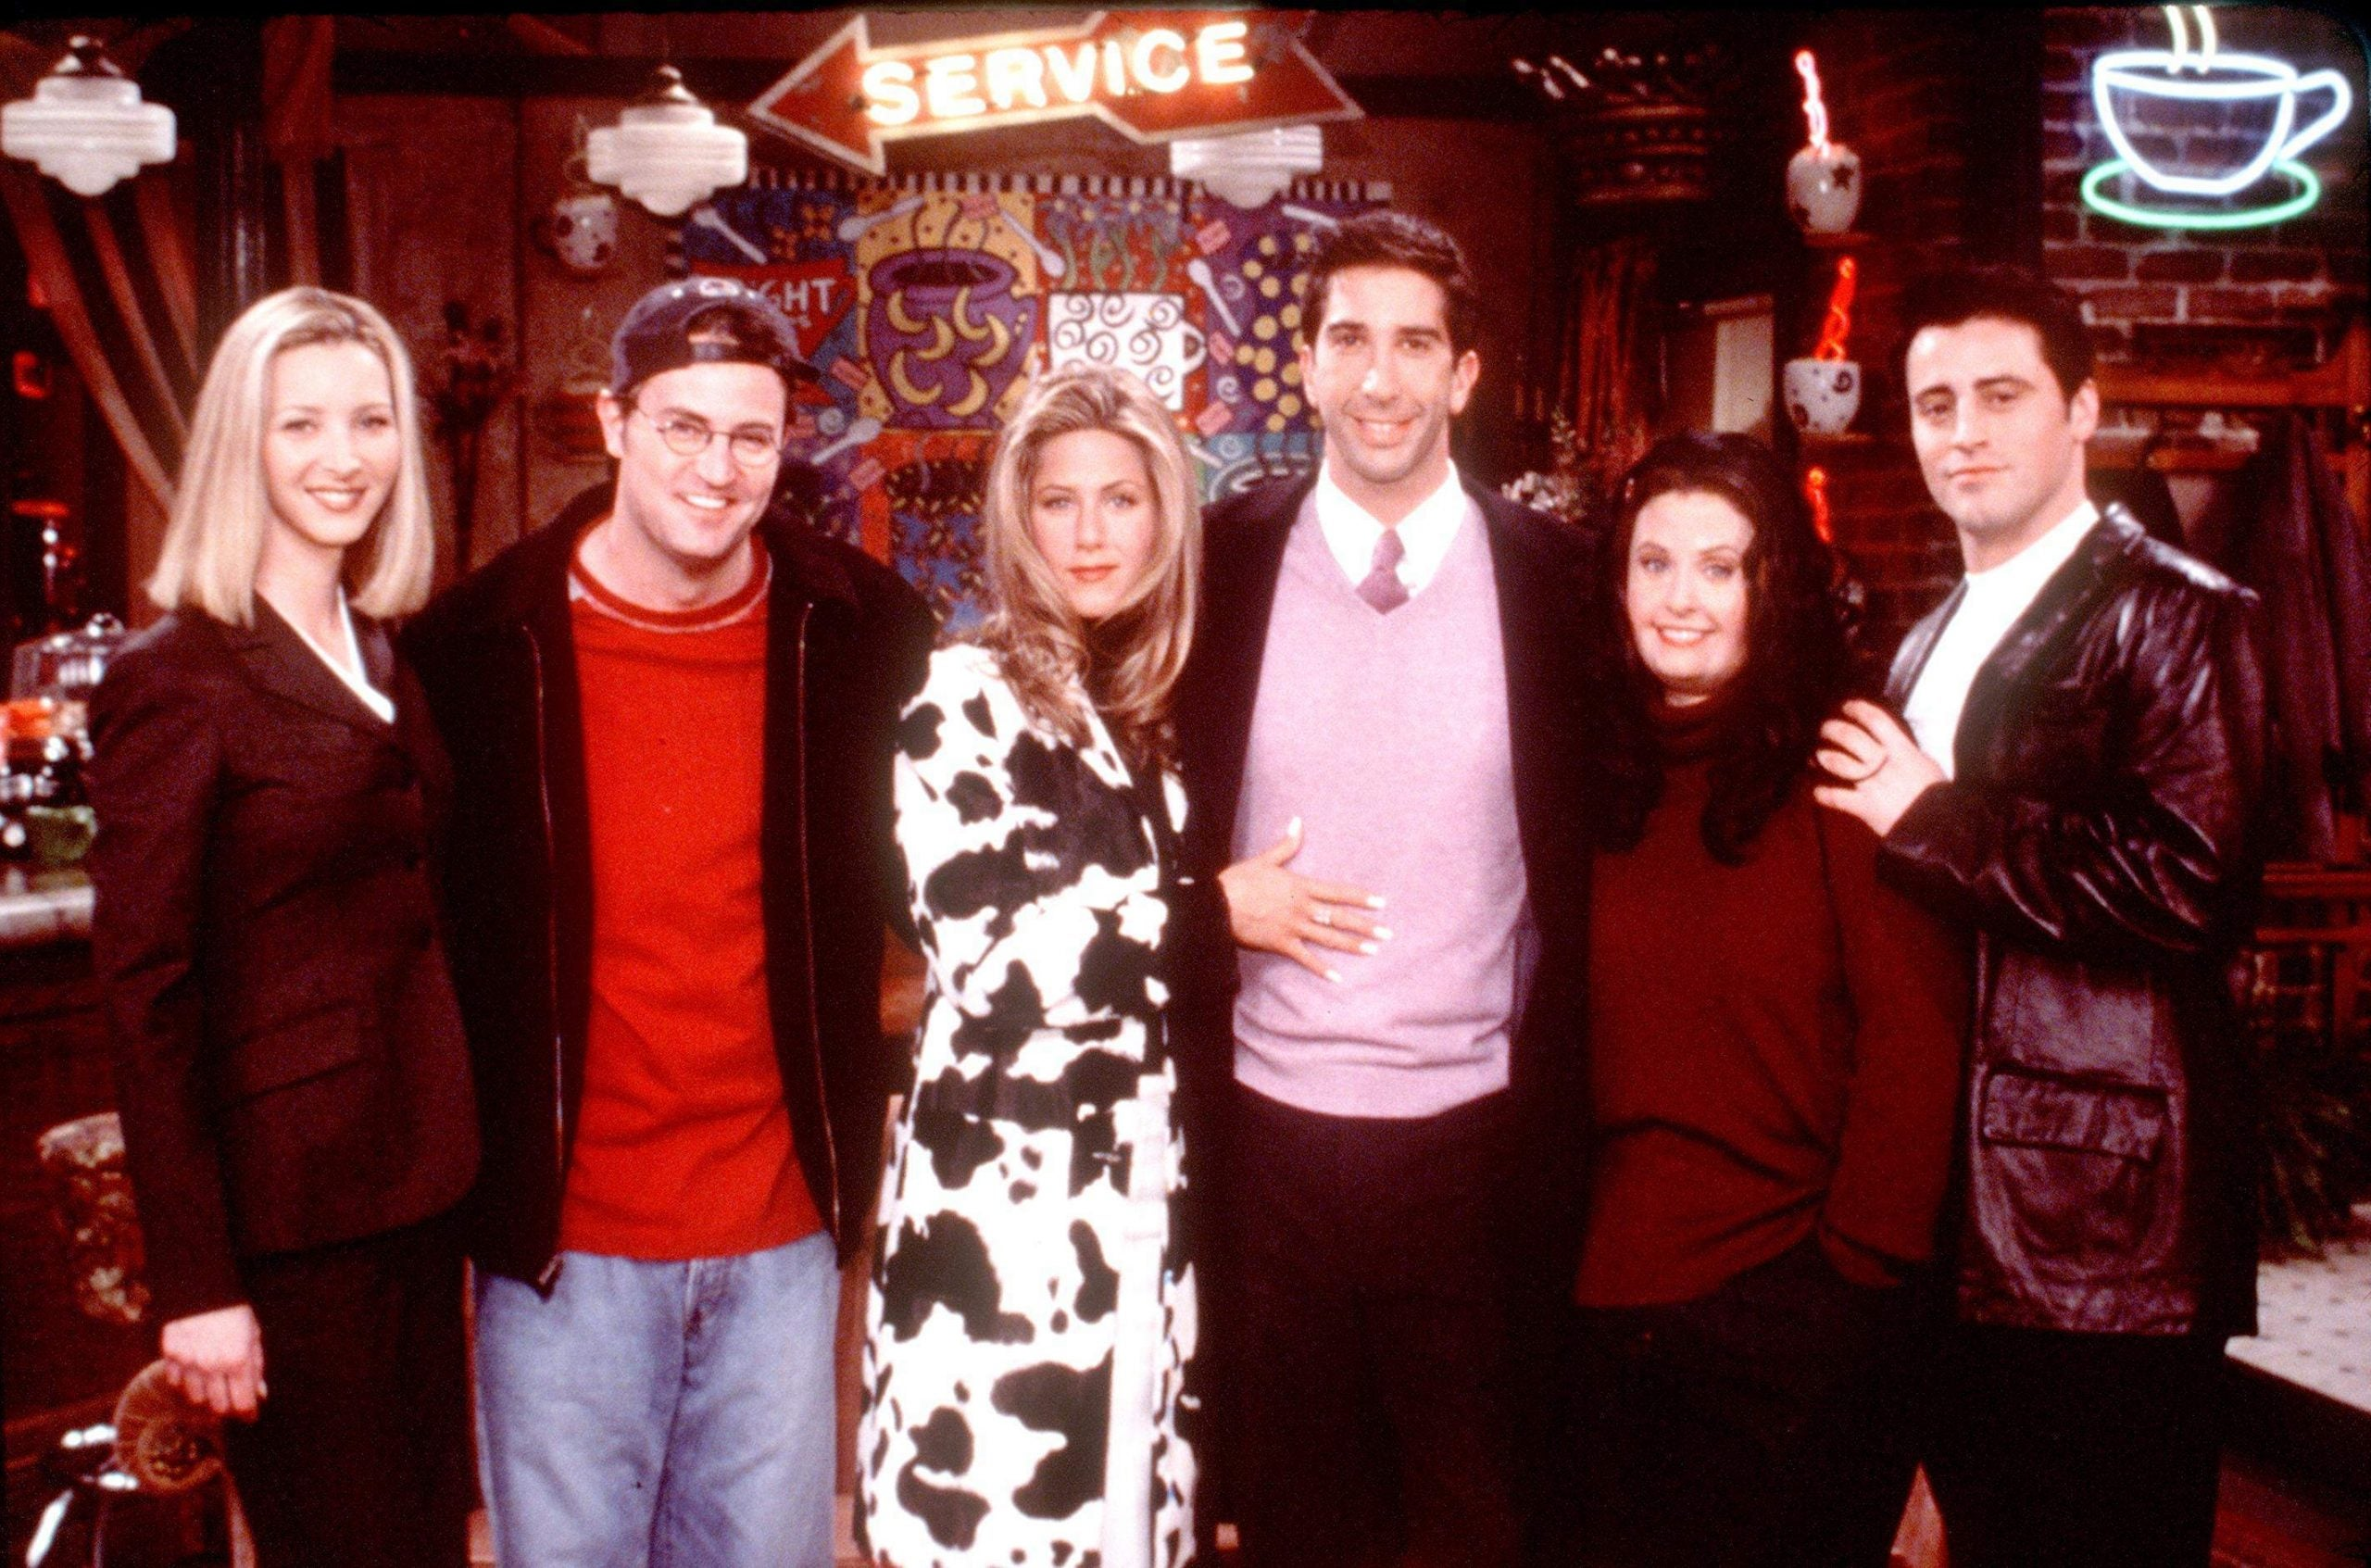 The One Where Phoebe Googled: why modern technology would make Friends obsolete